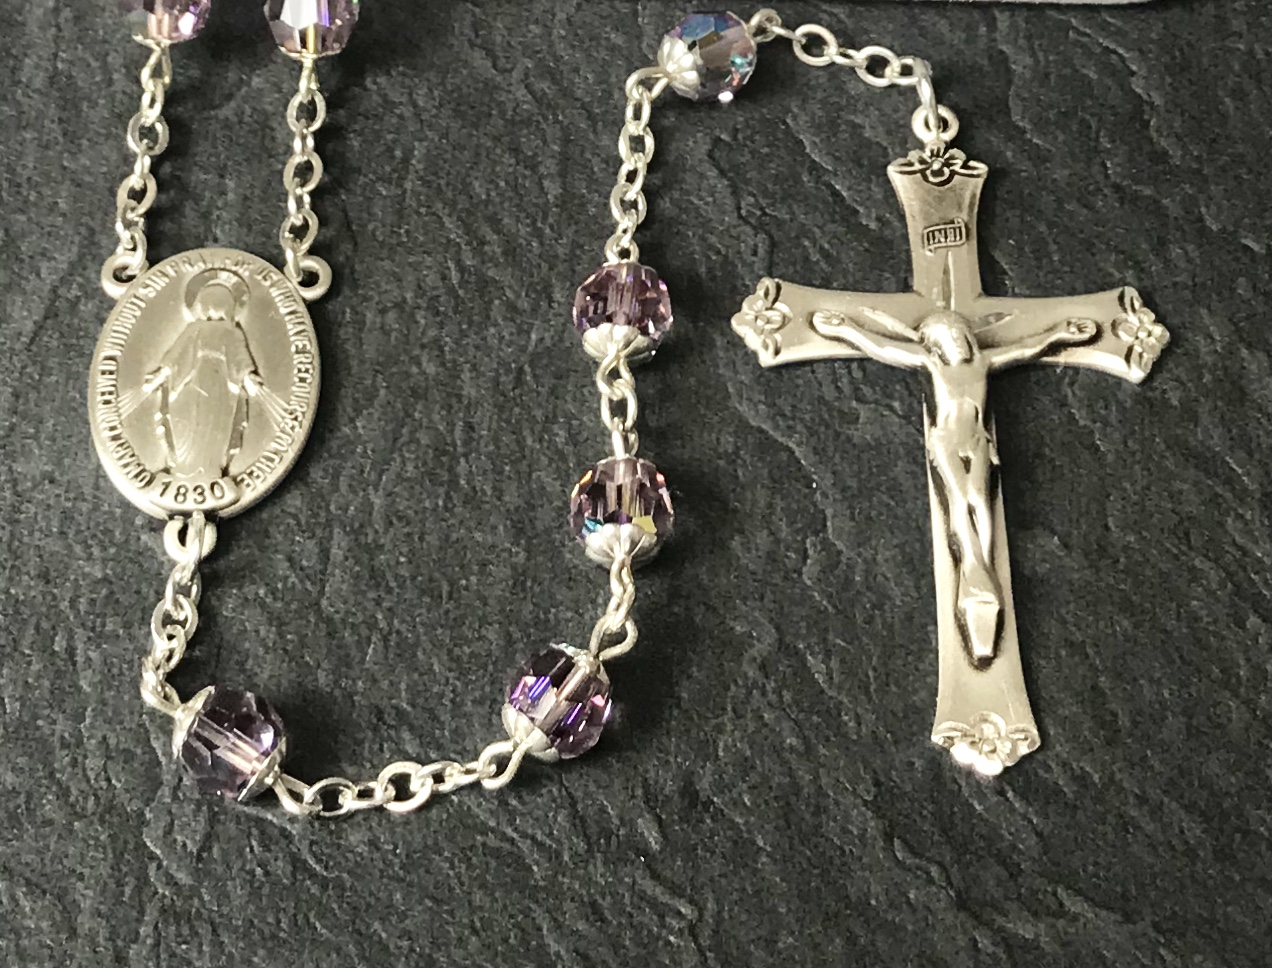 7mm ROUND AMETHYST AB SWAROVSKI DOUBLE CAPPED ALL STERLING ROSARY WITH STERLING SILVER WIRE, CHAIN, CROSS, & CENTER